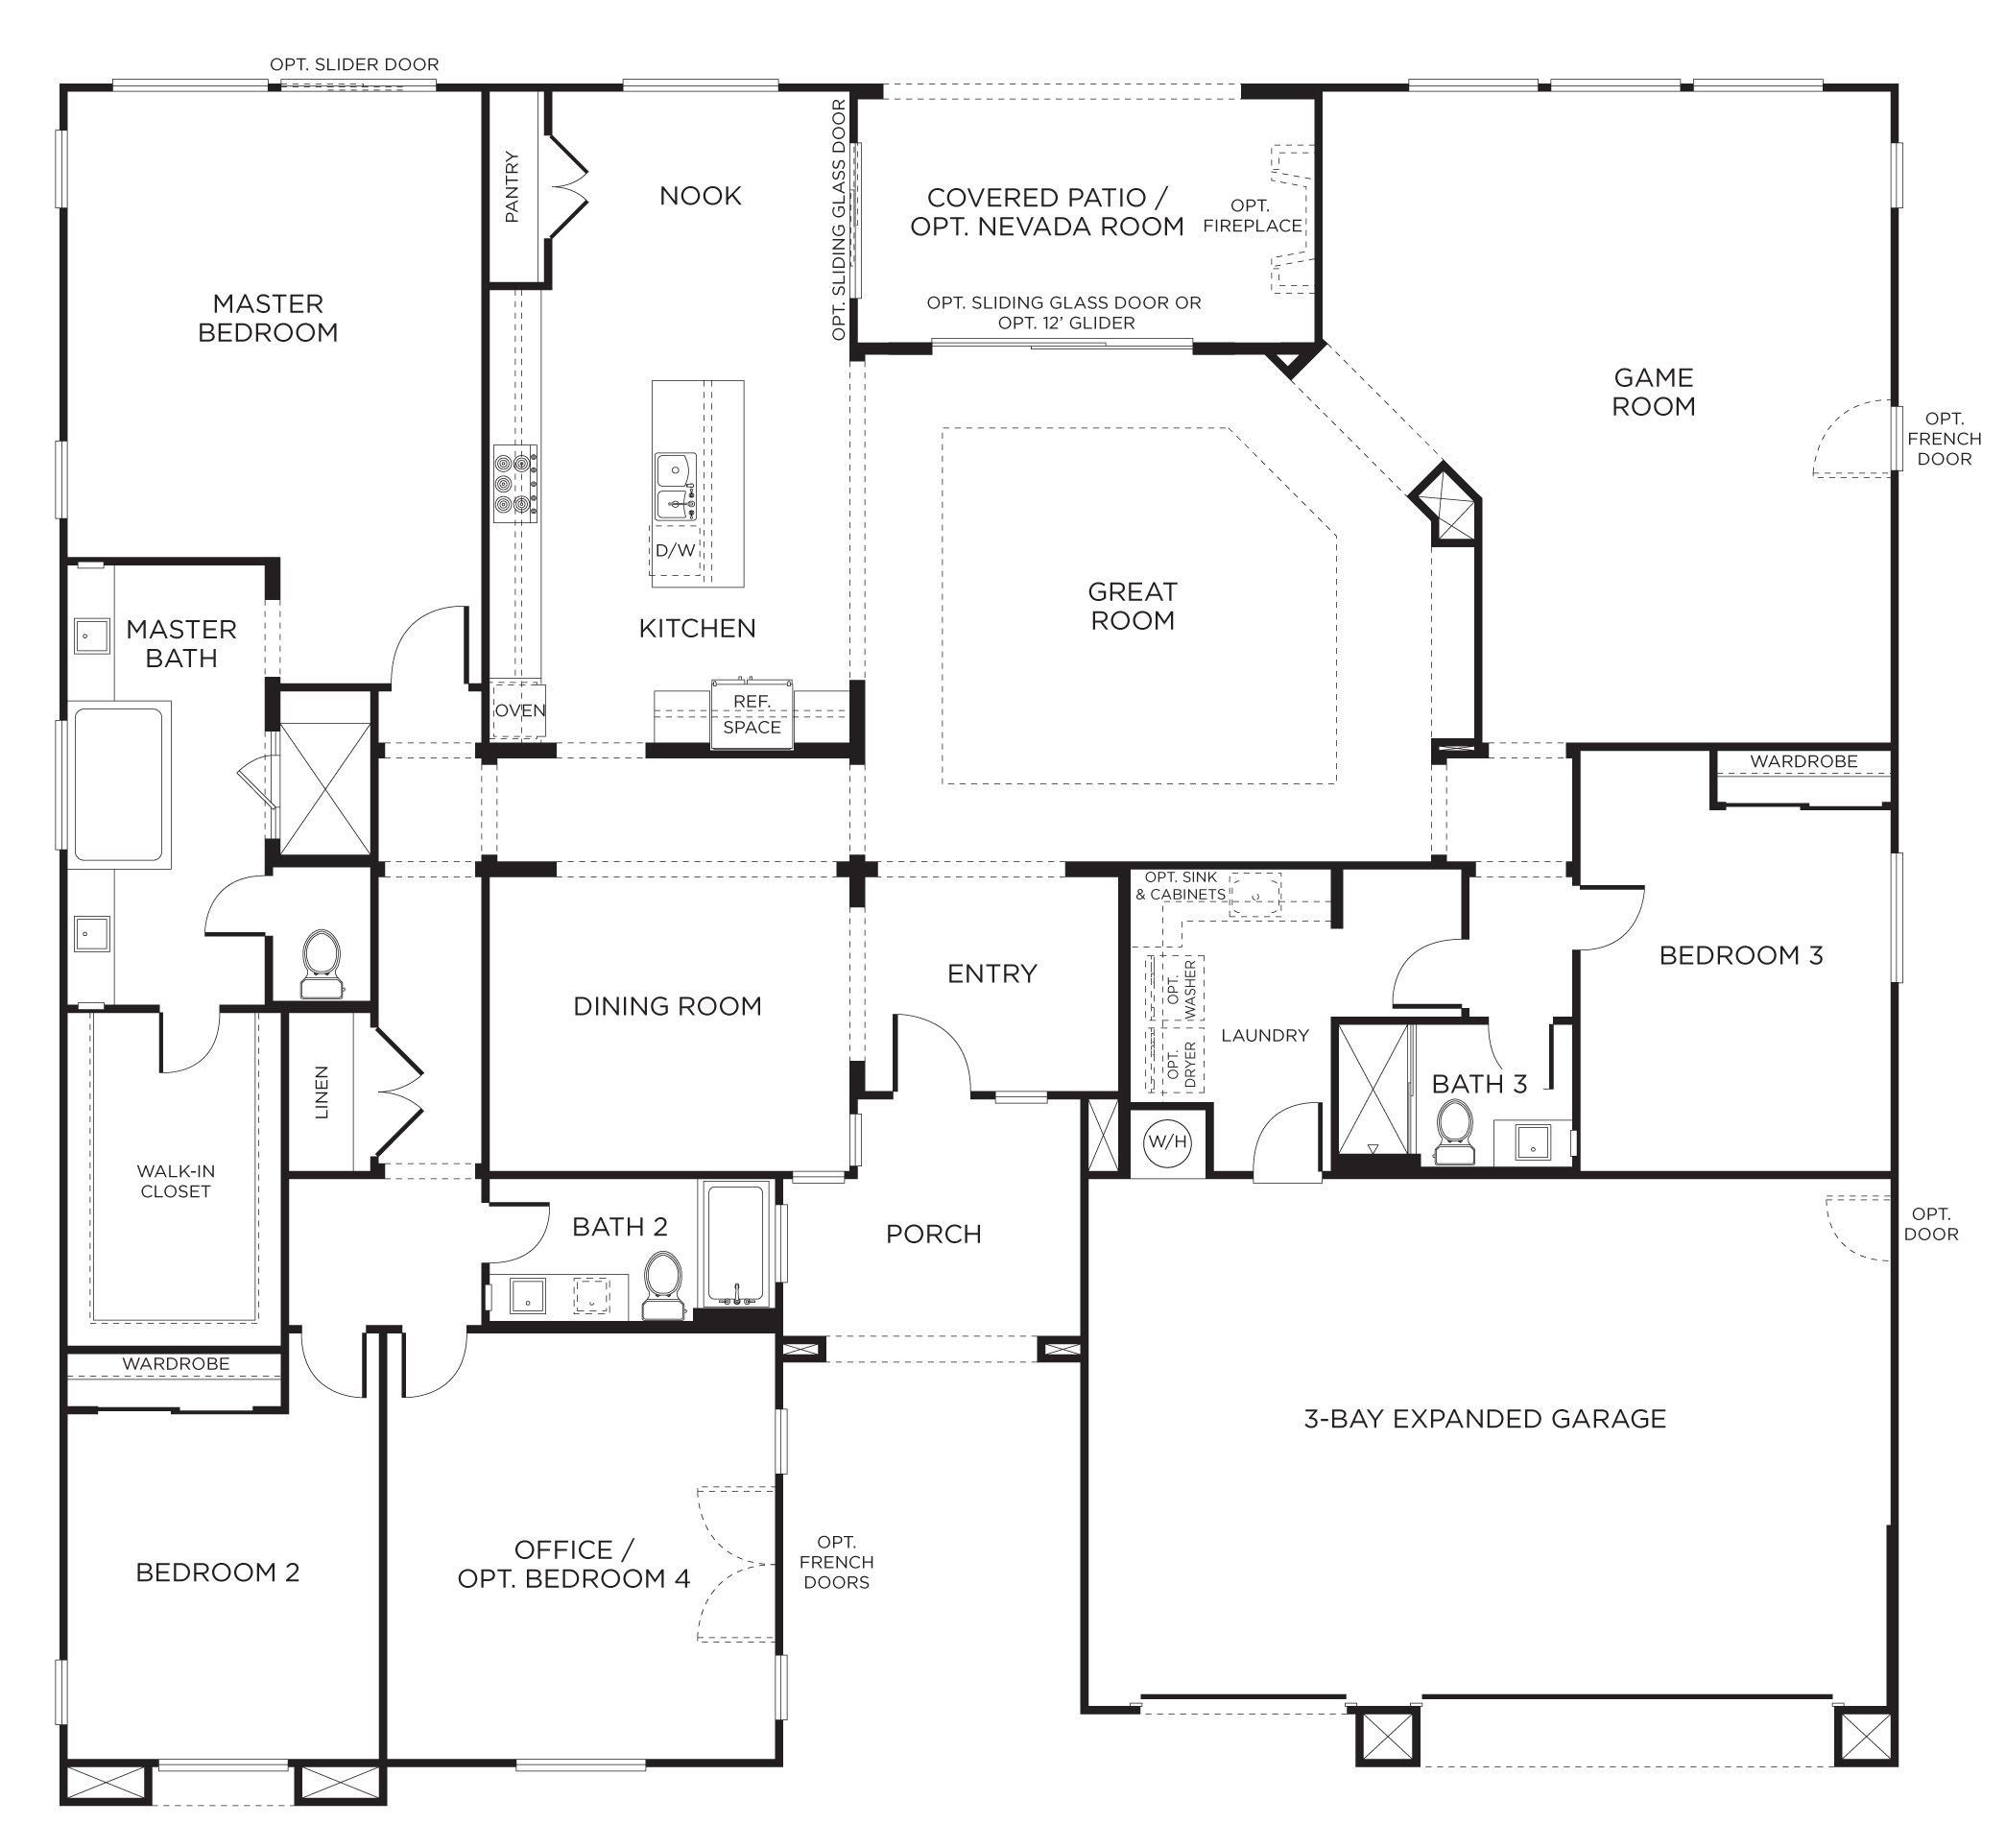 floor plans for 4 bedroom houses floorplan 2 3 4 bedrooms 3 bathrooms 3400 square 26663